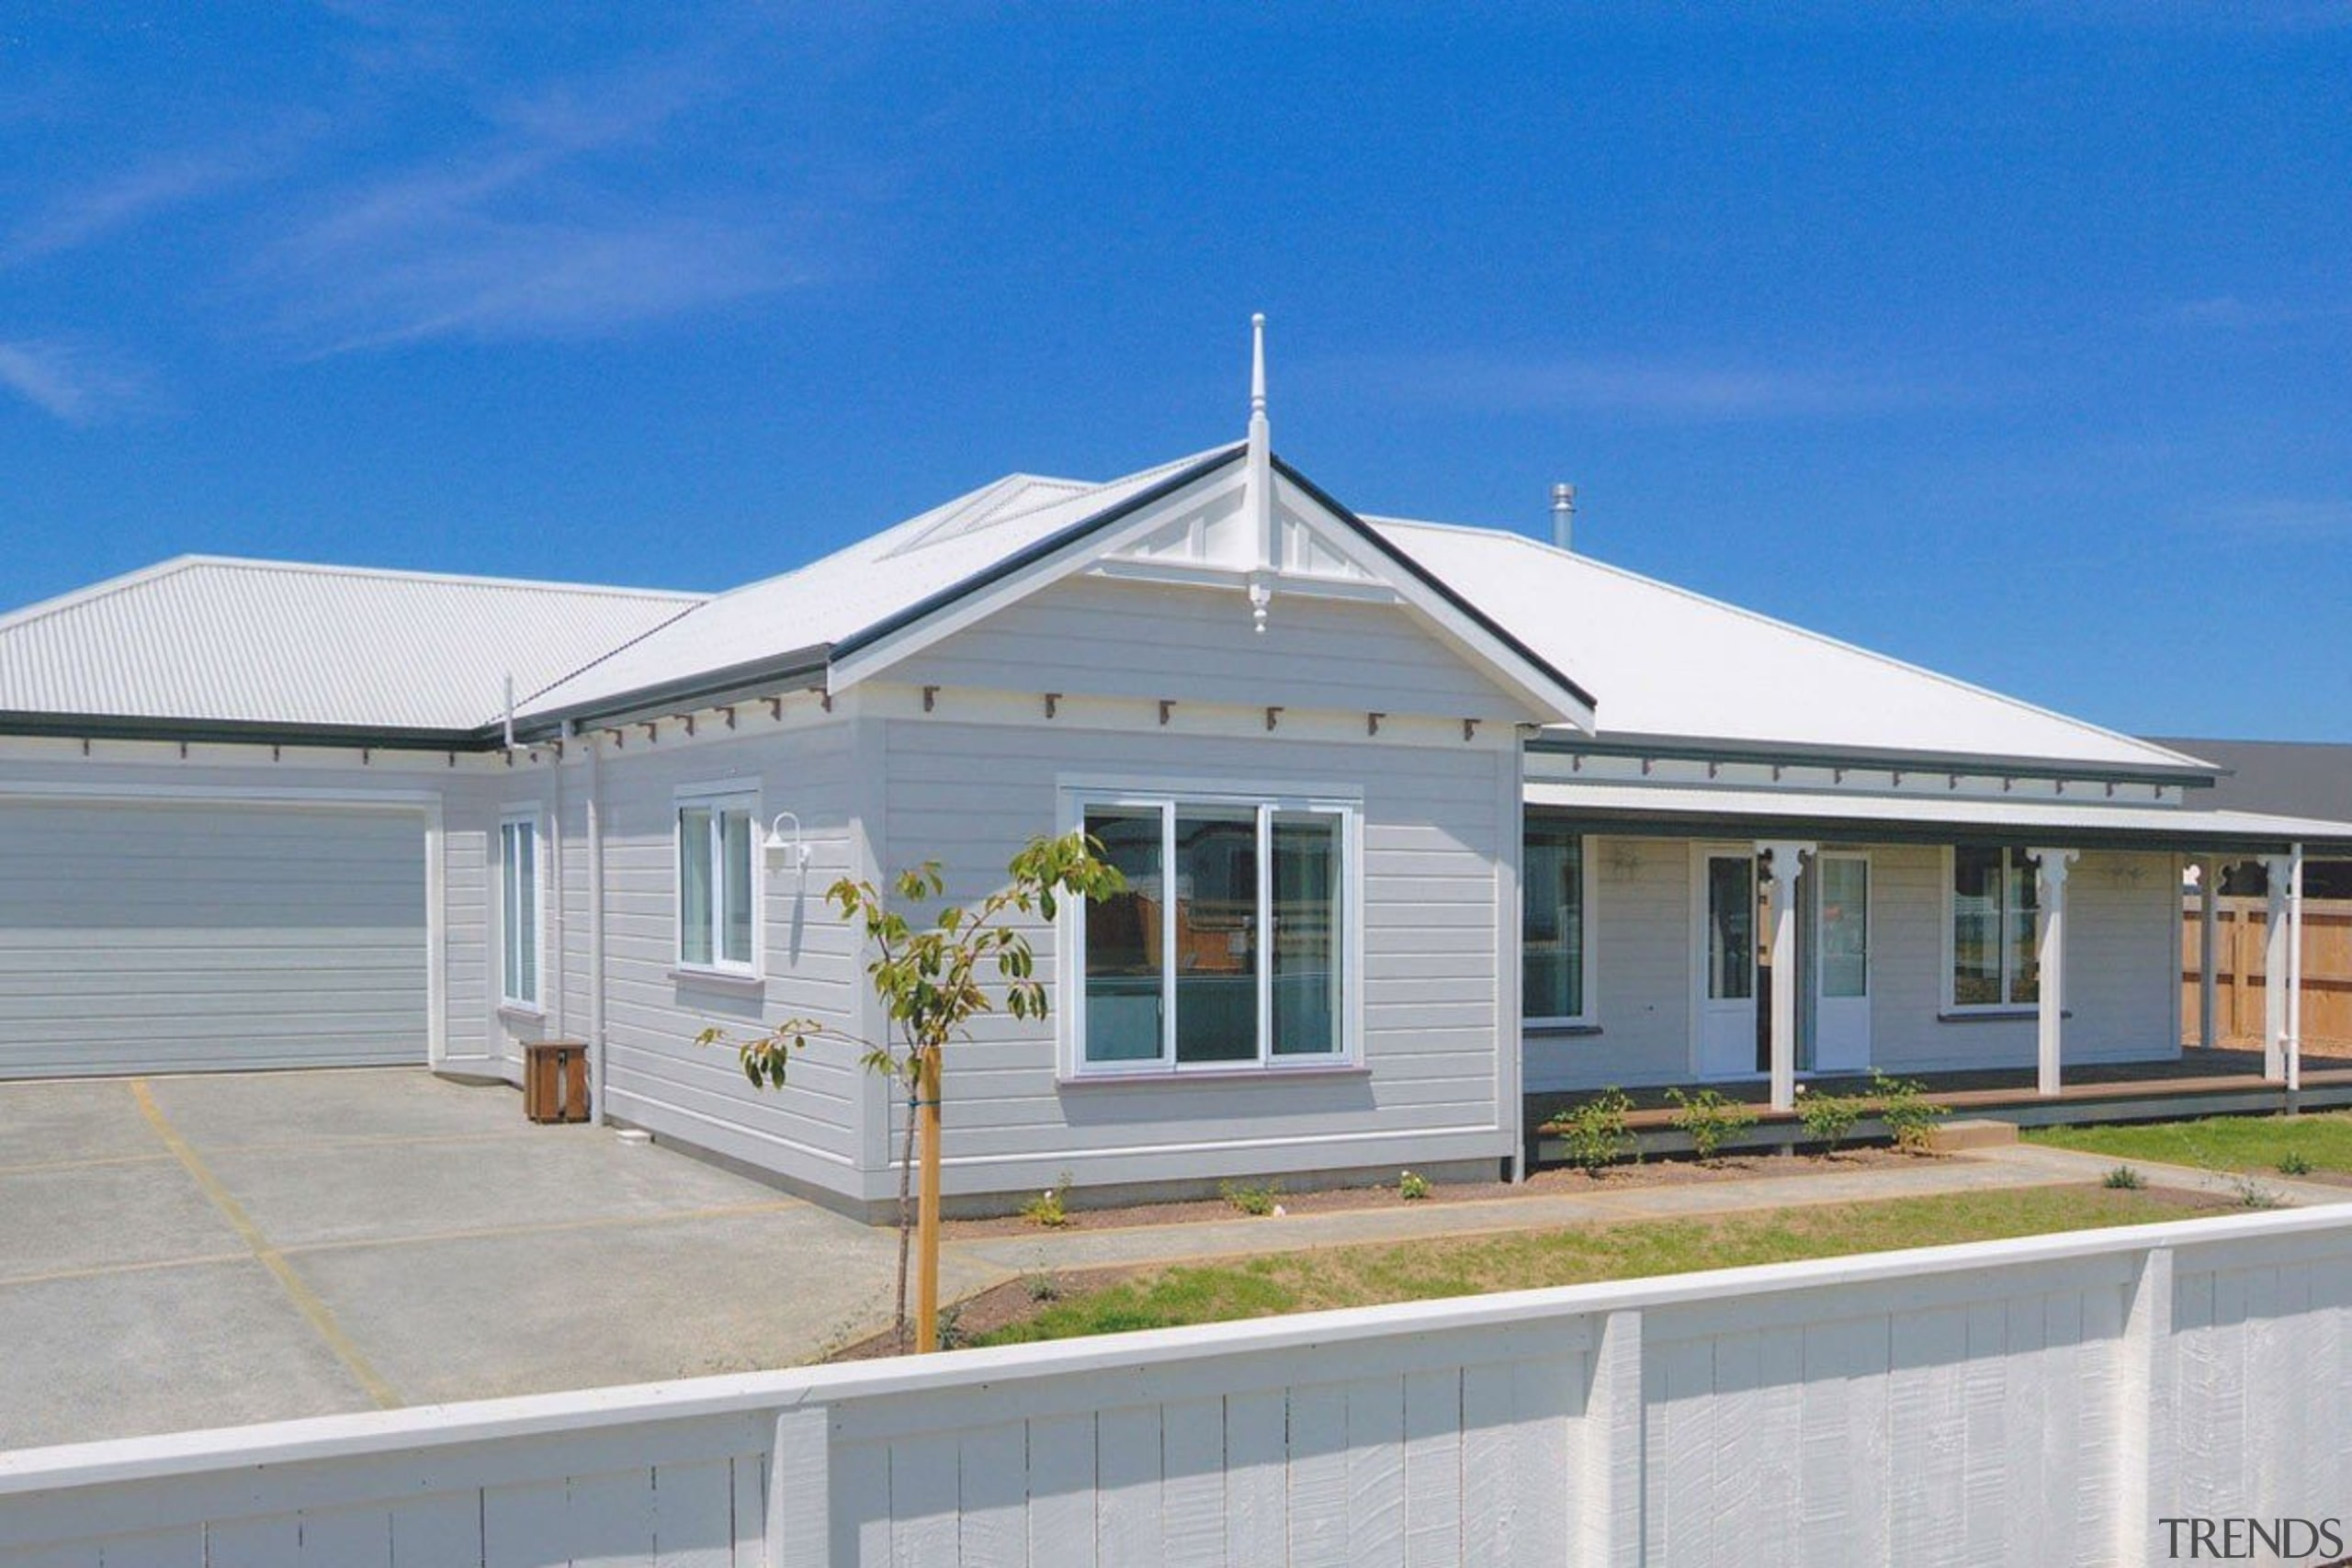 Envira weatherboard home in Renwick Blenheim. - Envira cottage, elevation, estate, facade, home, house, property, real estate, residential area, roof, gray, blue